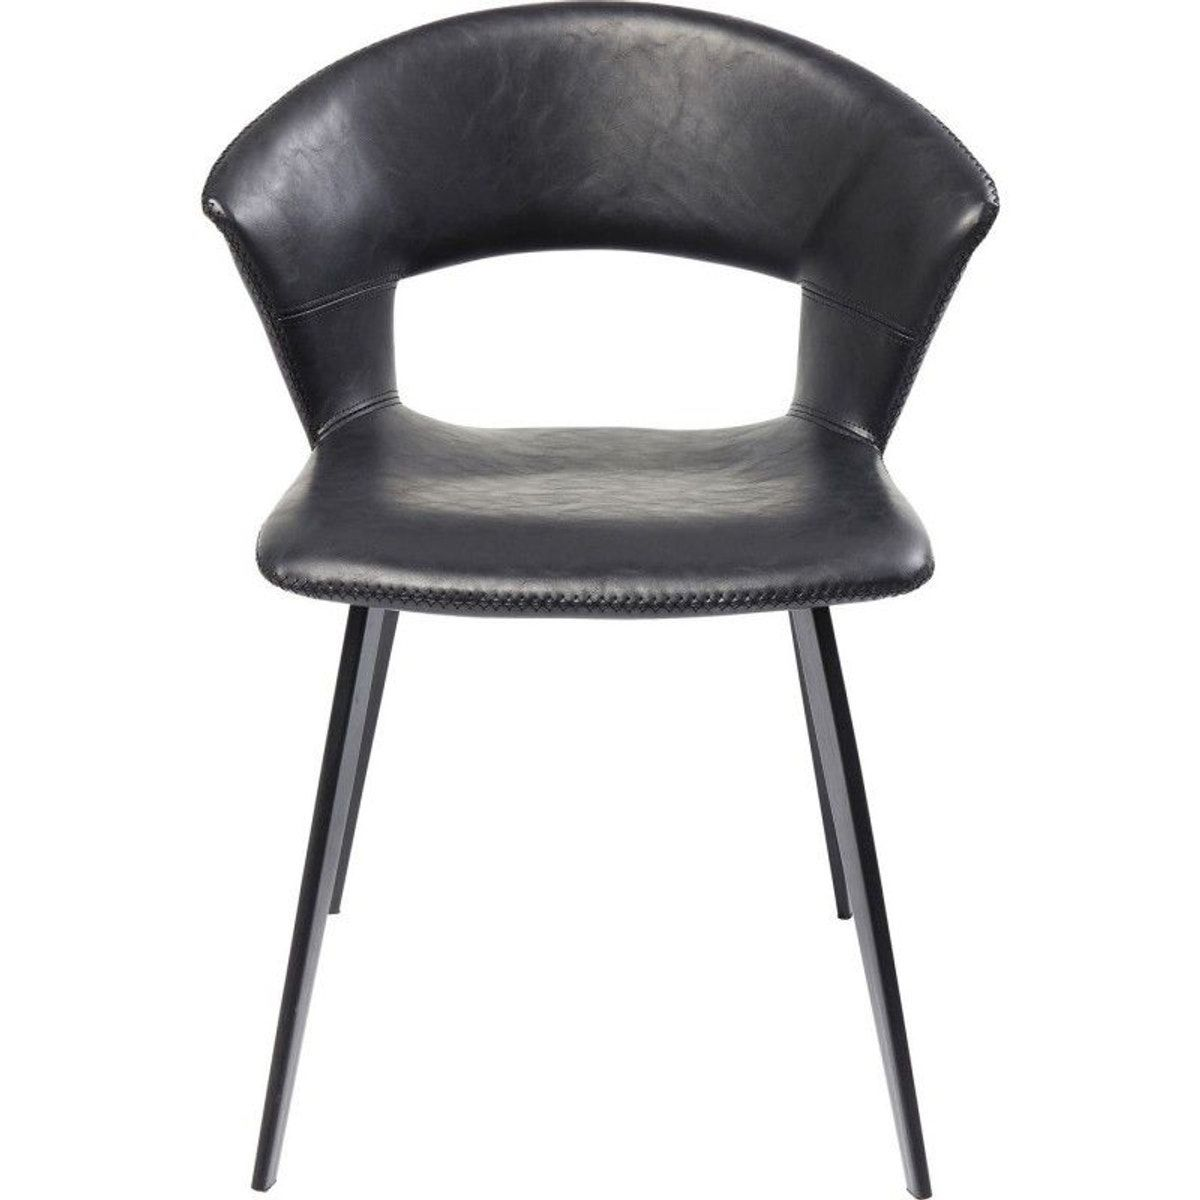 Chaise Reunion Noire Kare Design Taille Taille Unique Products Kare Design Chaise Et Design